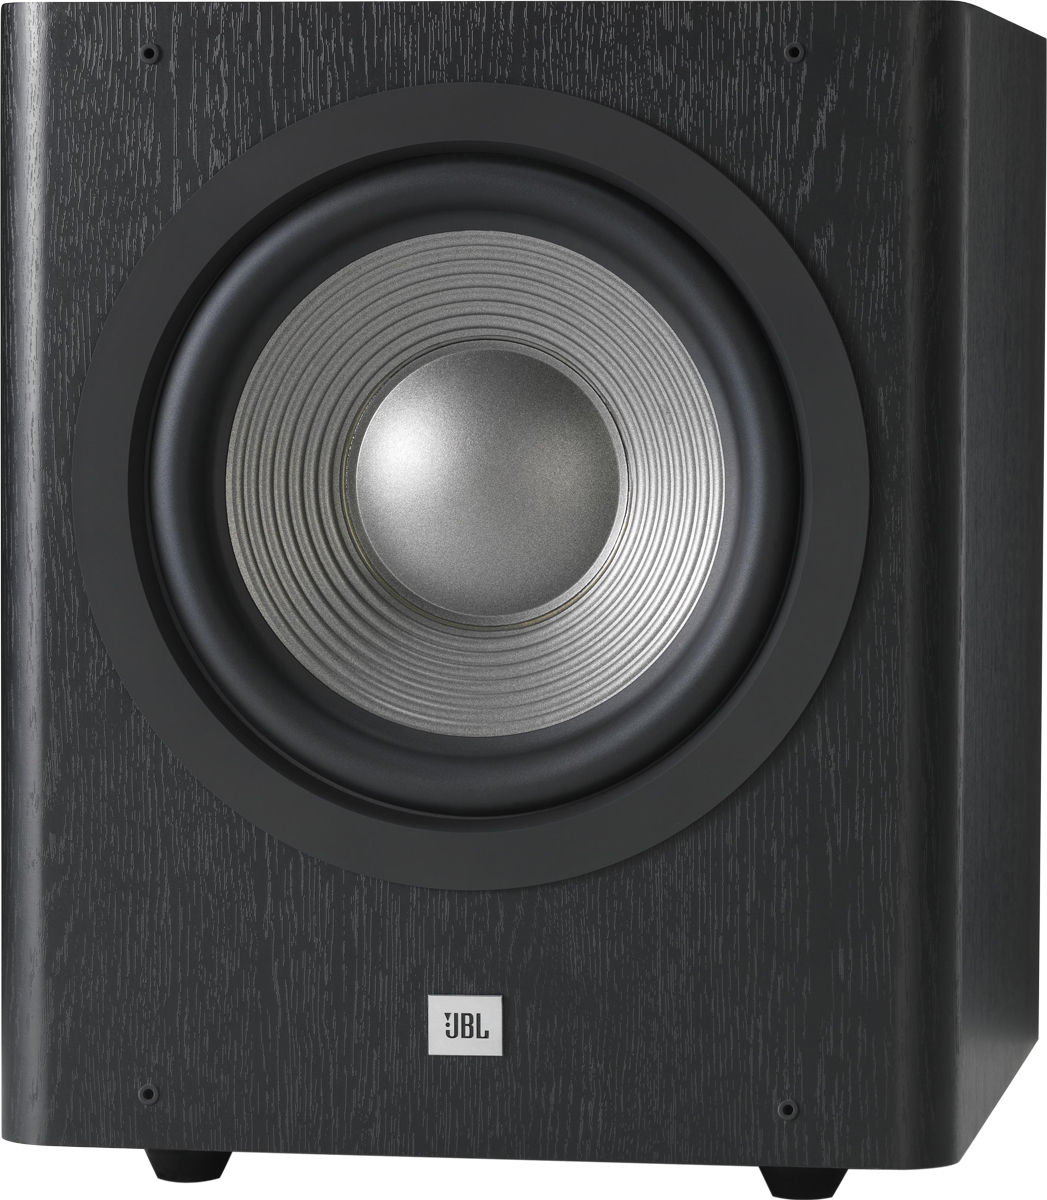 jbl sub 250p caissons de basses son vid. Black Bedroom Furniture Sets. Home Design Ideas